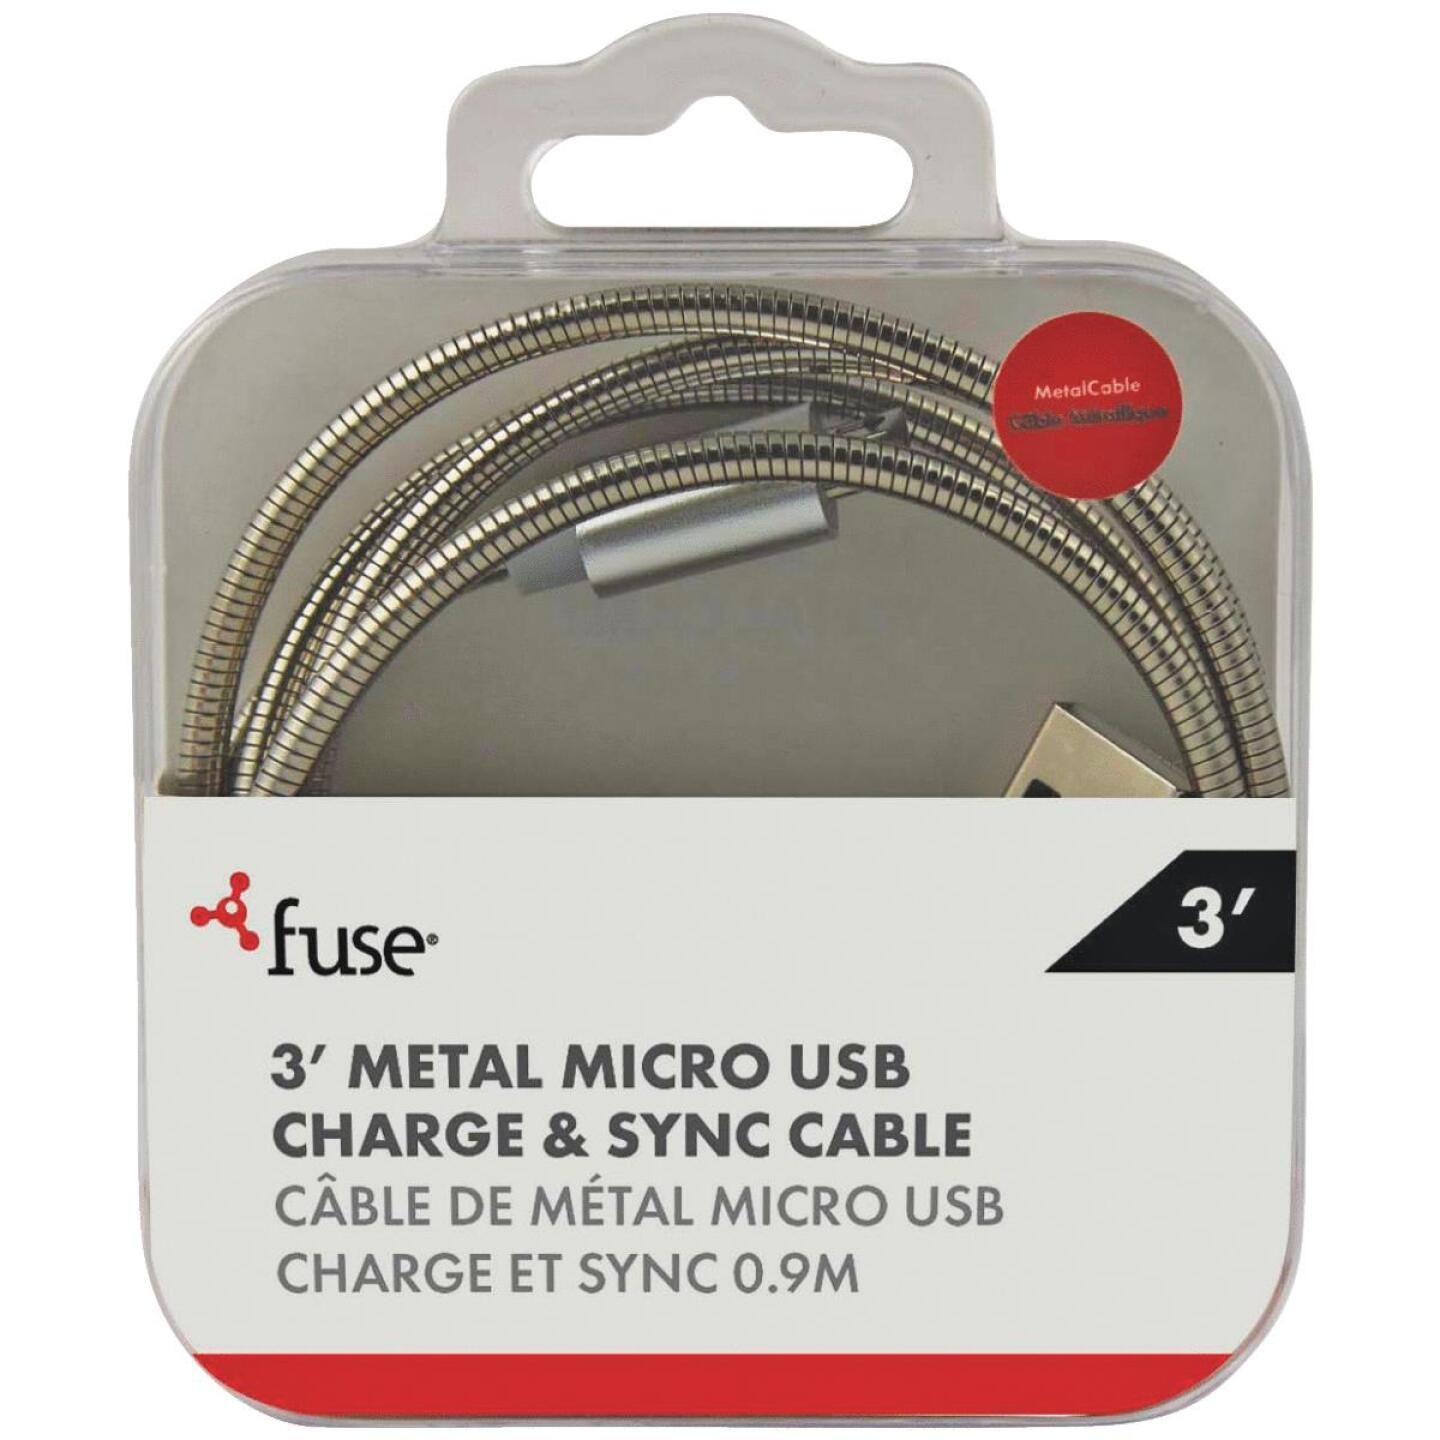 Fuse 3 Ft. Metal Micro USB Charging & Sync Cable Image 1